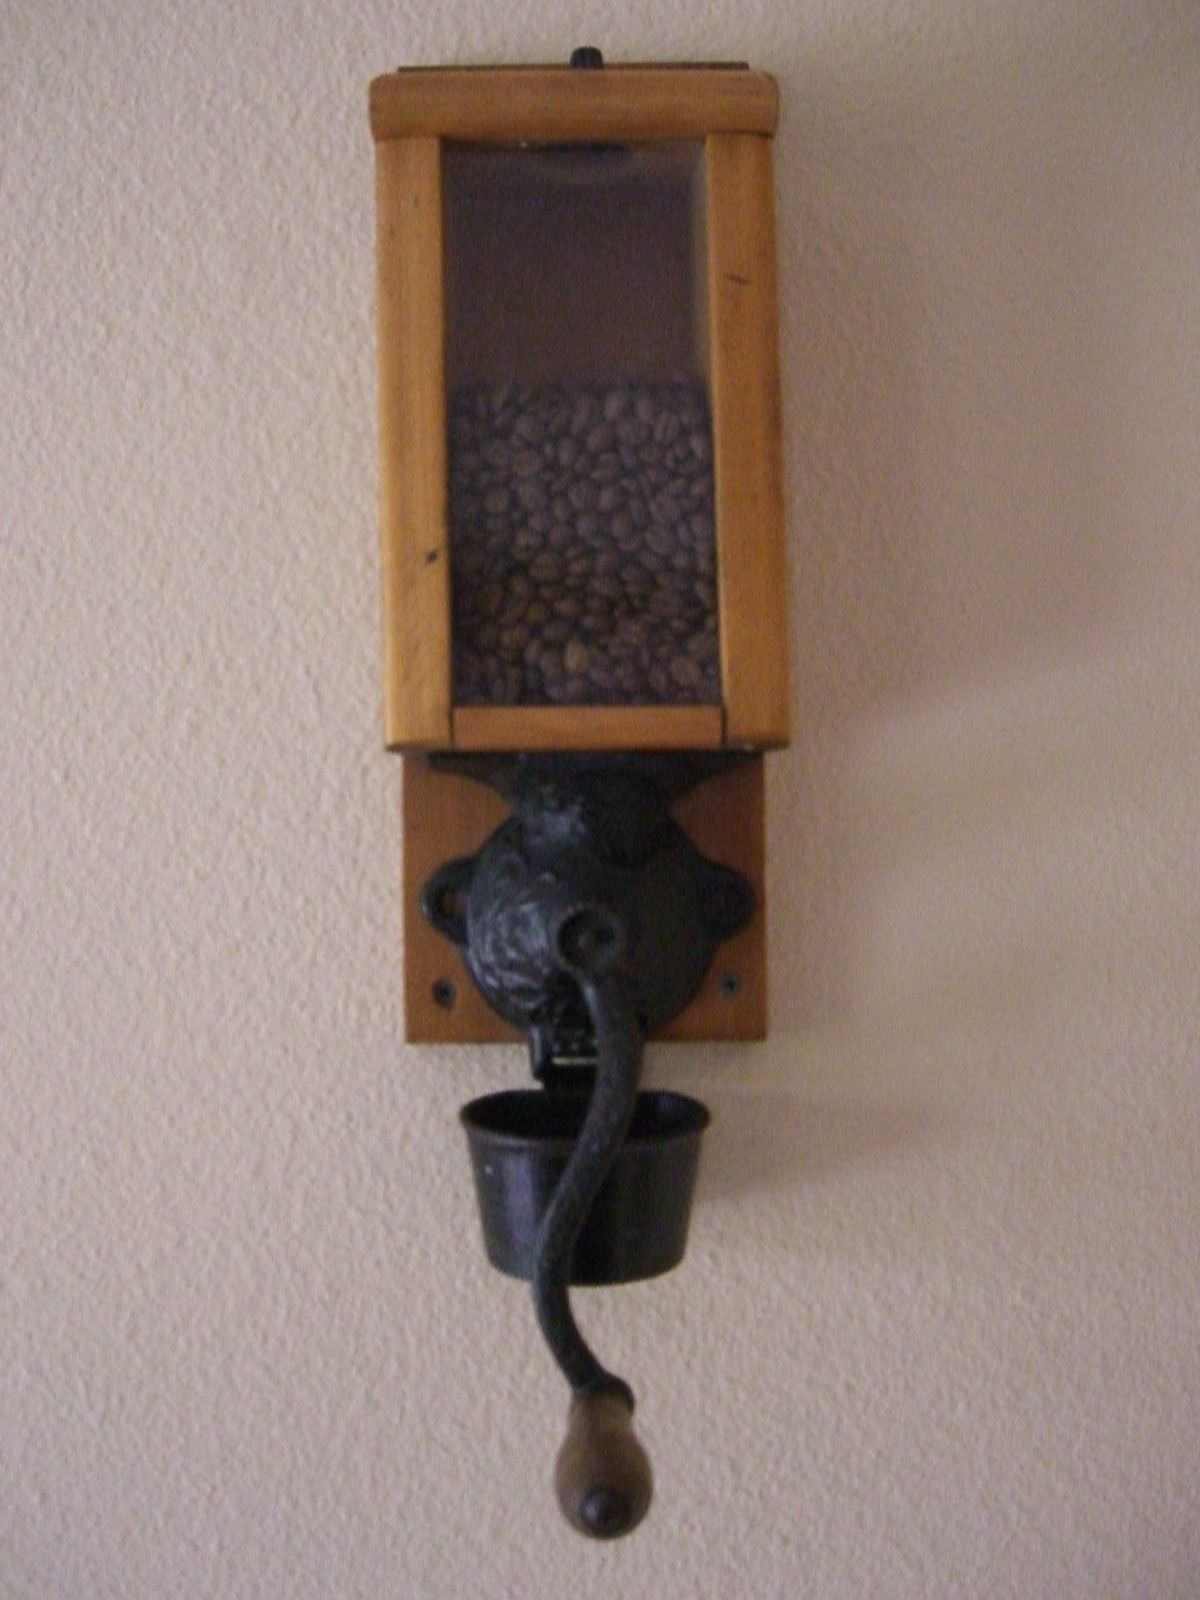 Antique Vintage Cast Iron Wall Mount Coffee Grinder Mill with Cup   eBay